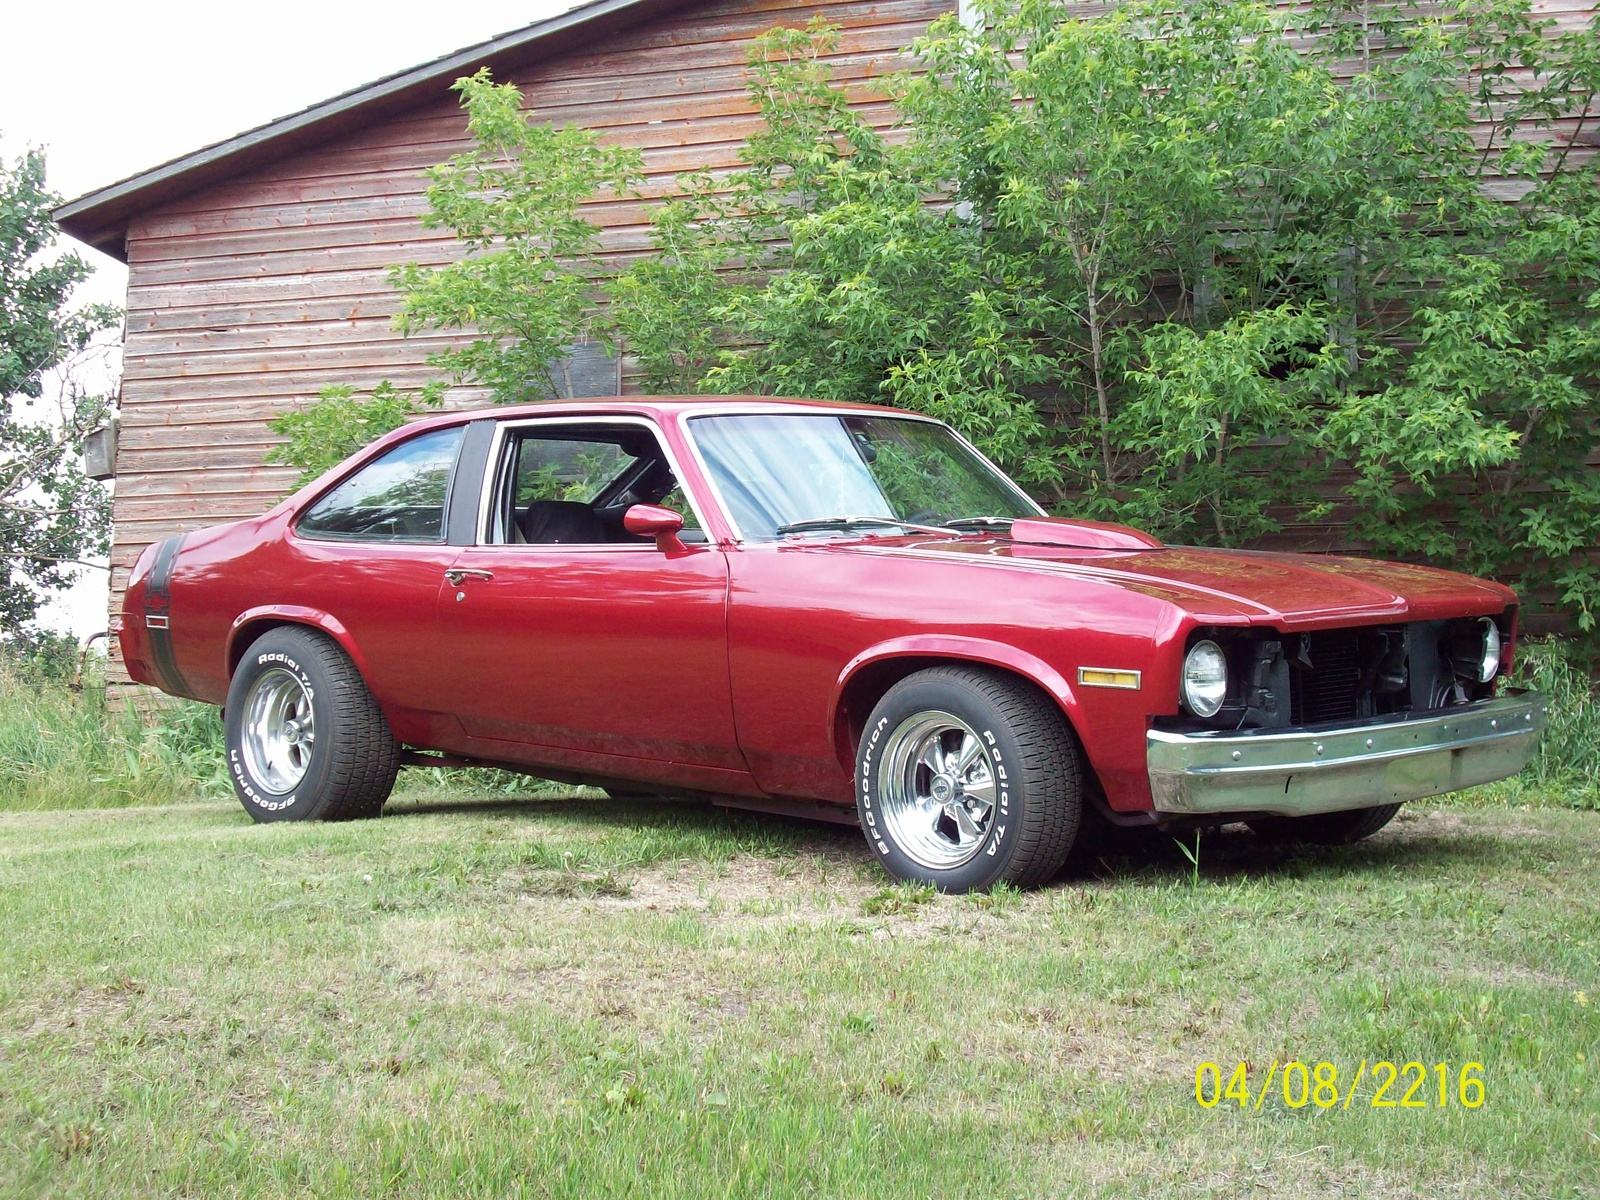 1975 Chevrolet Nova Photos Informations Articles 68 Mustang Hood Turn Signal Wiring Harness 20